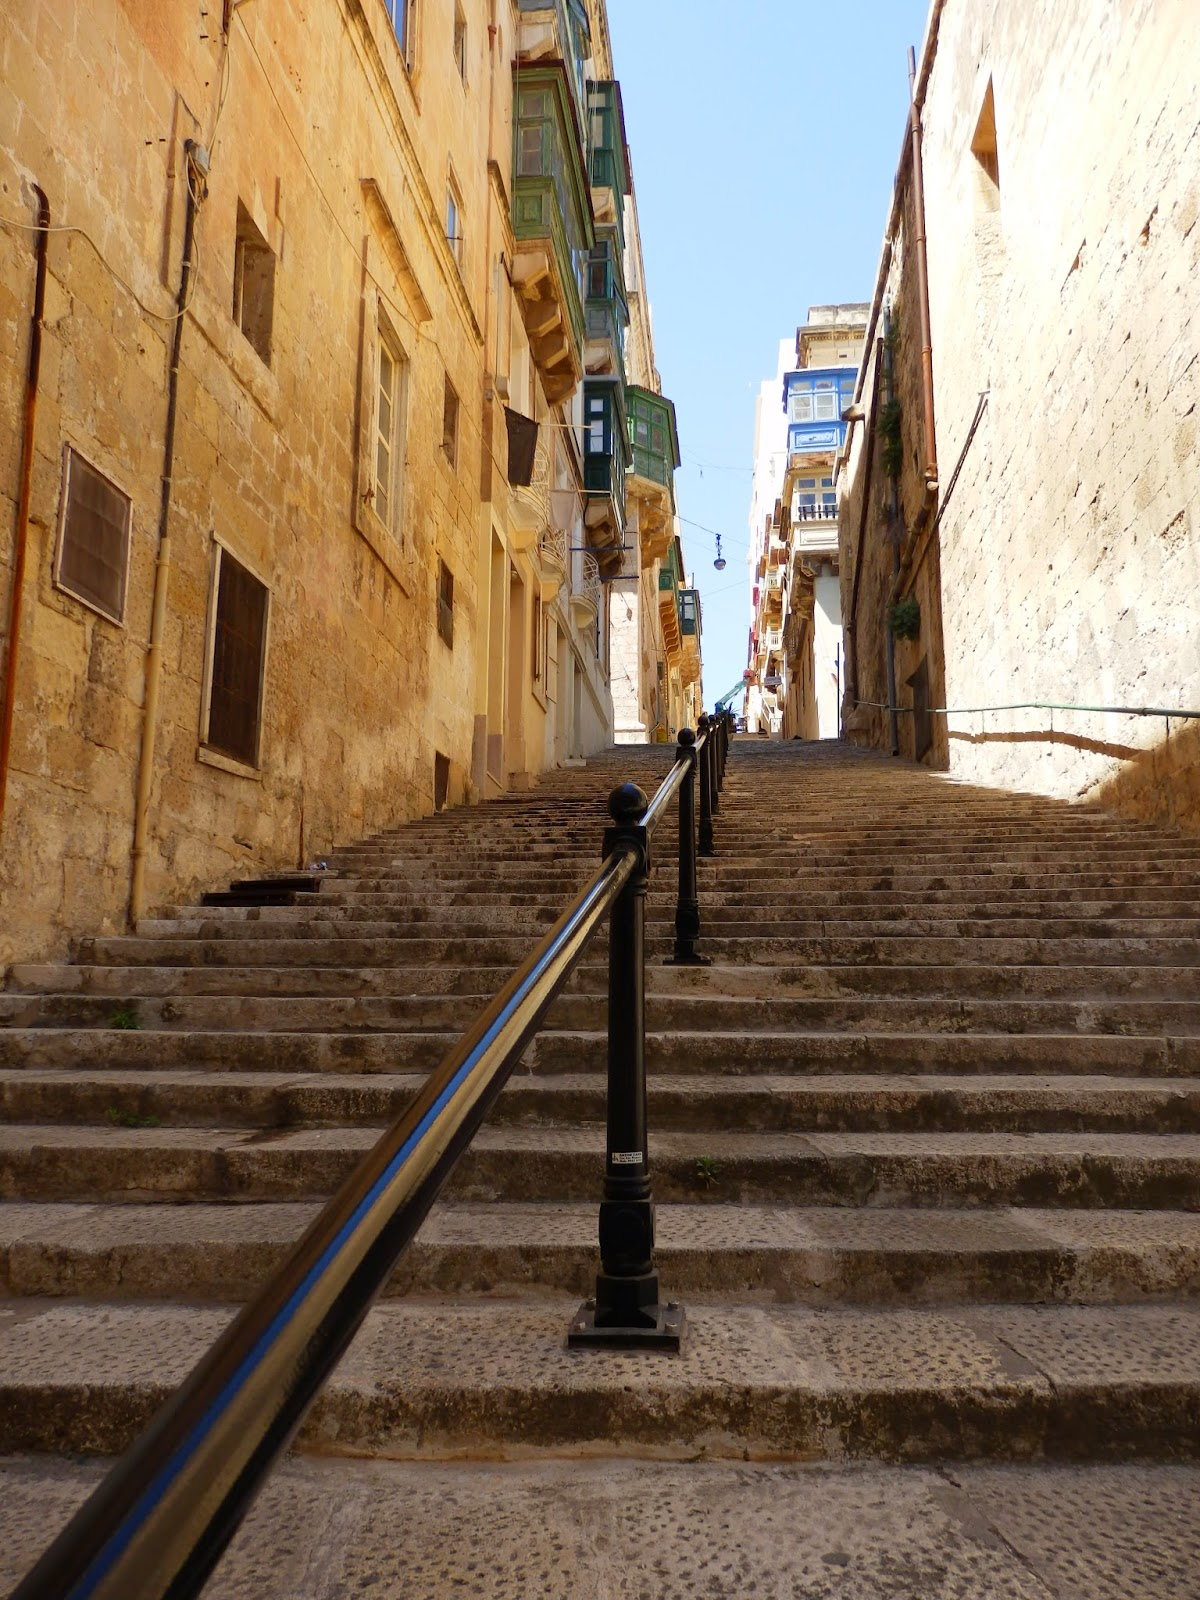 Steep stepped streets in Valletta, Malta